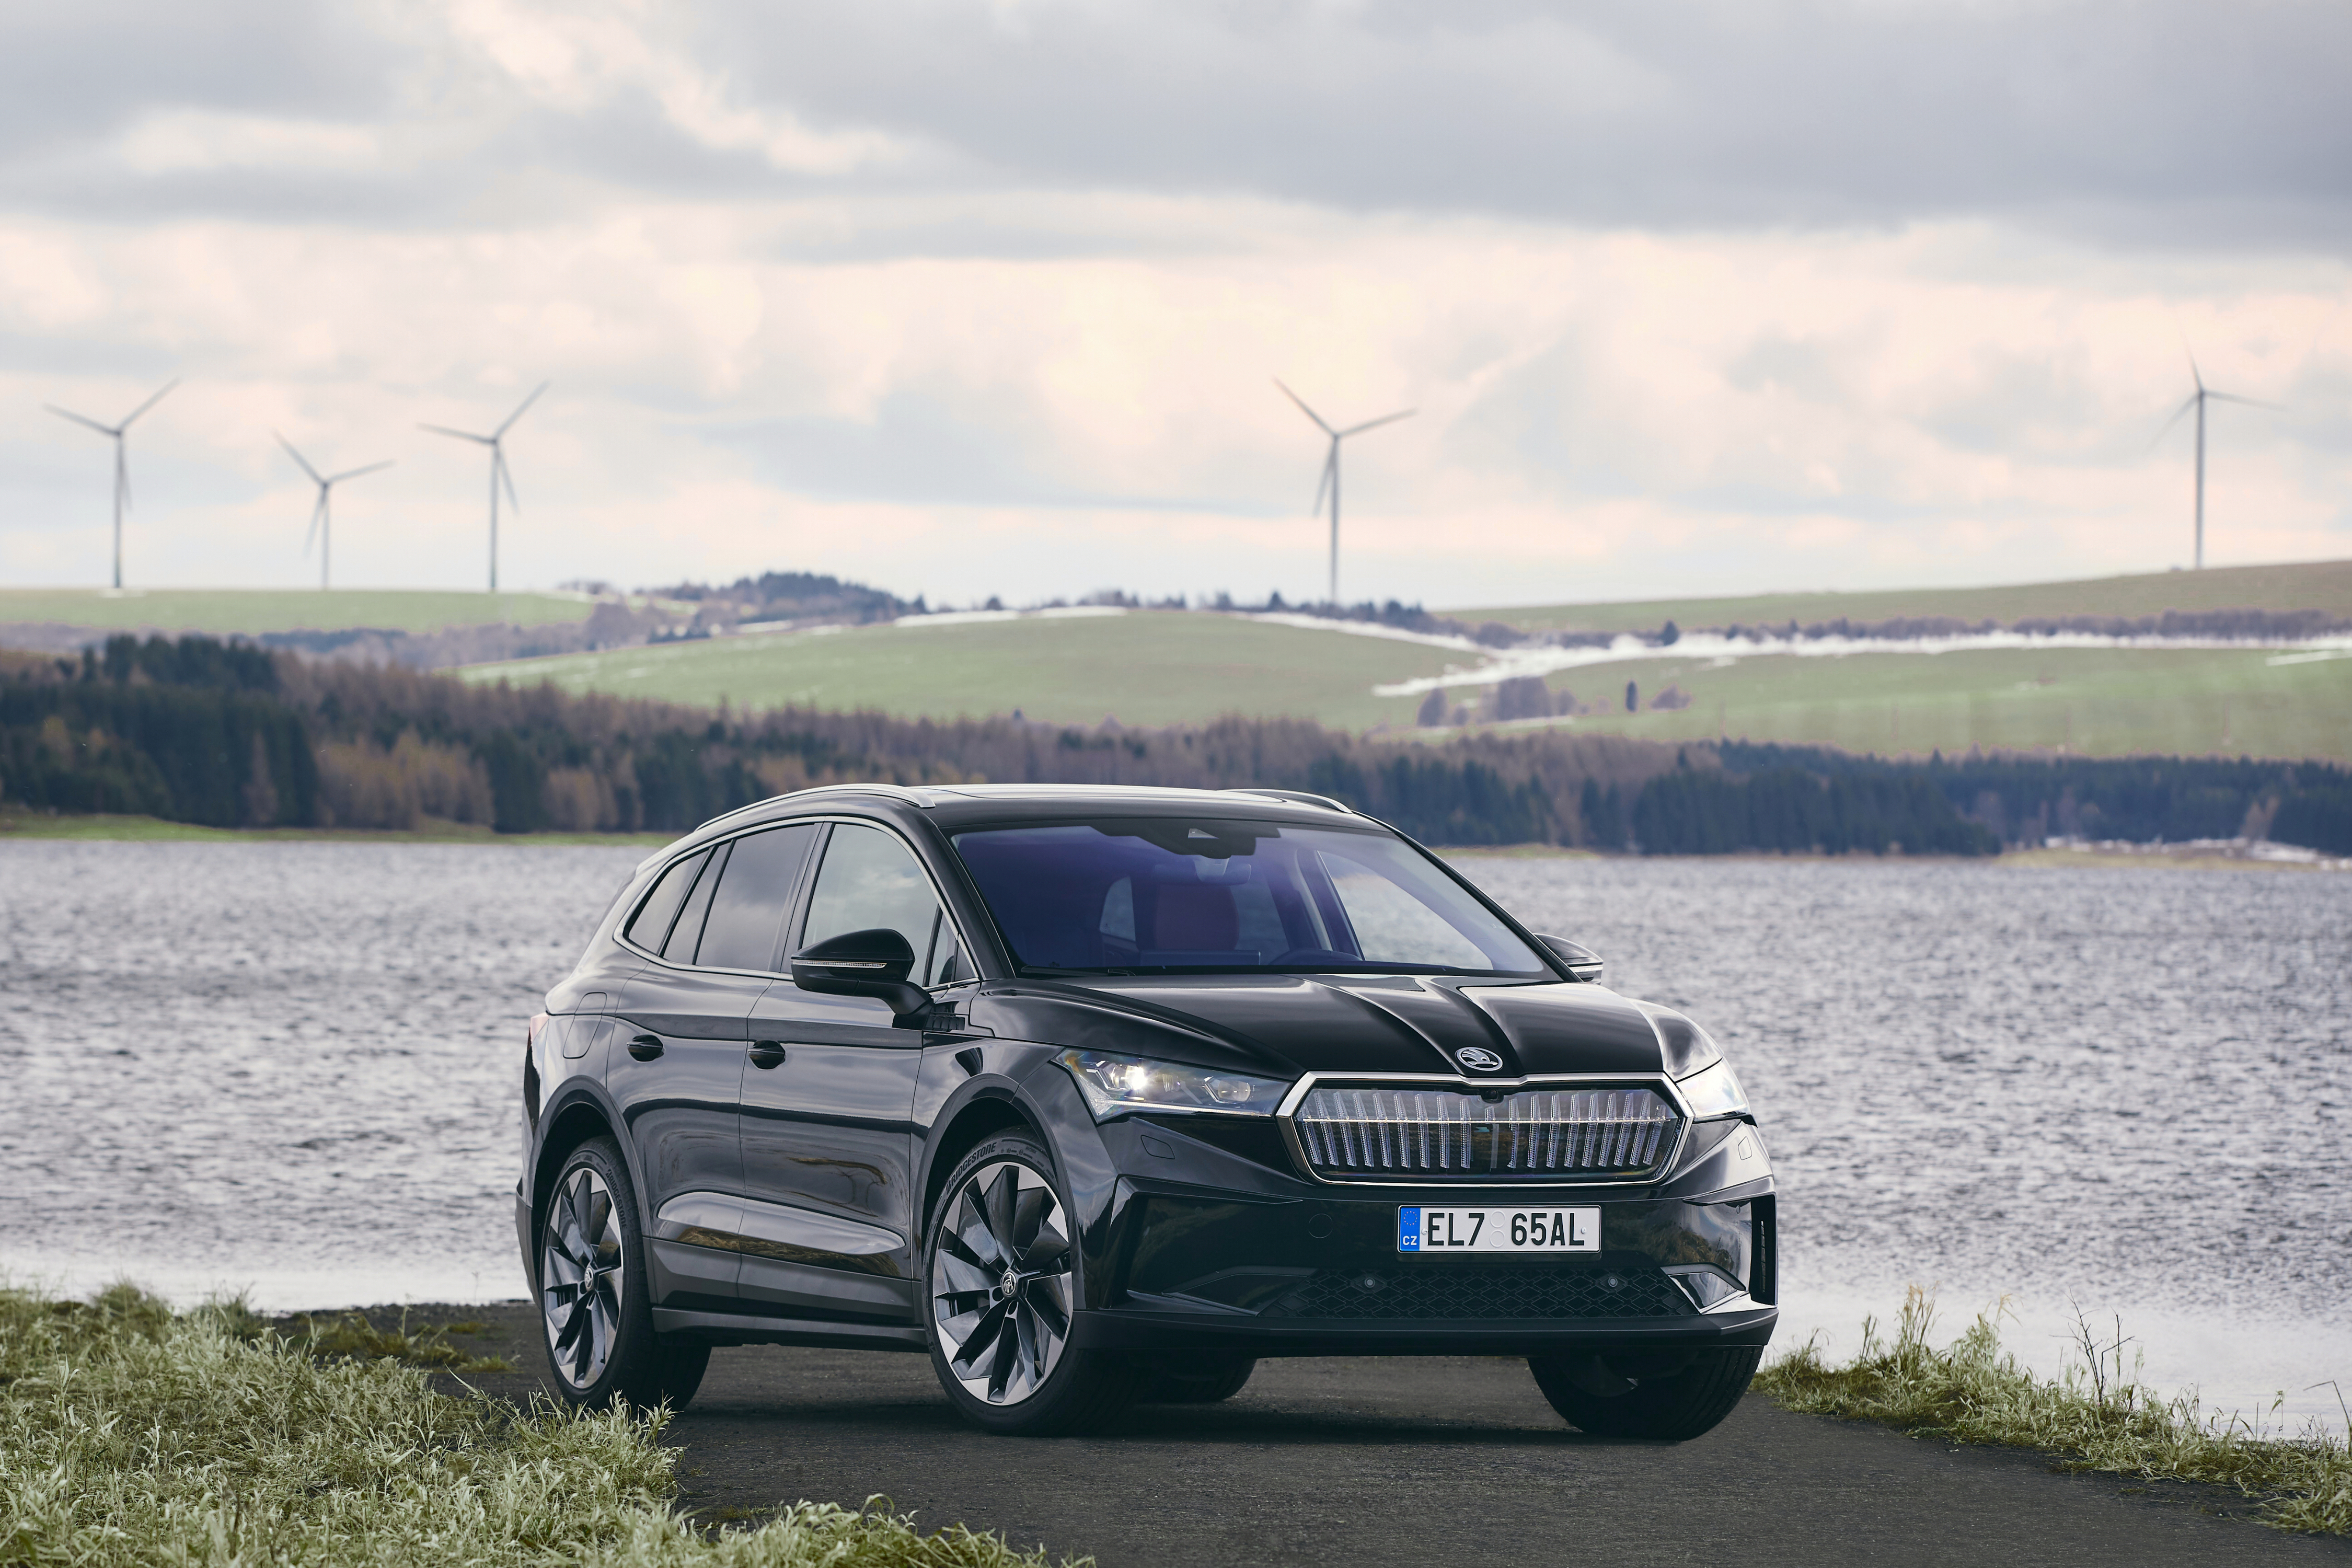 SKODA AUTO delivers the ENYAQ iV to customers with a carbon-neutral balance sheet - Image 2